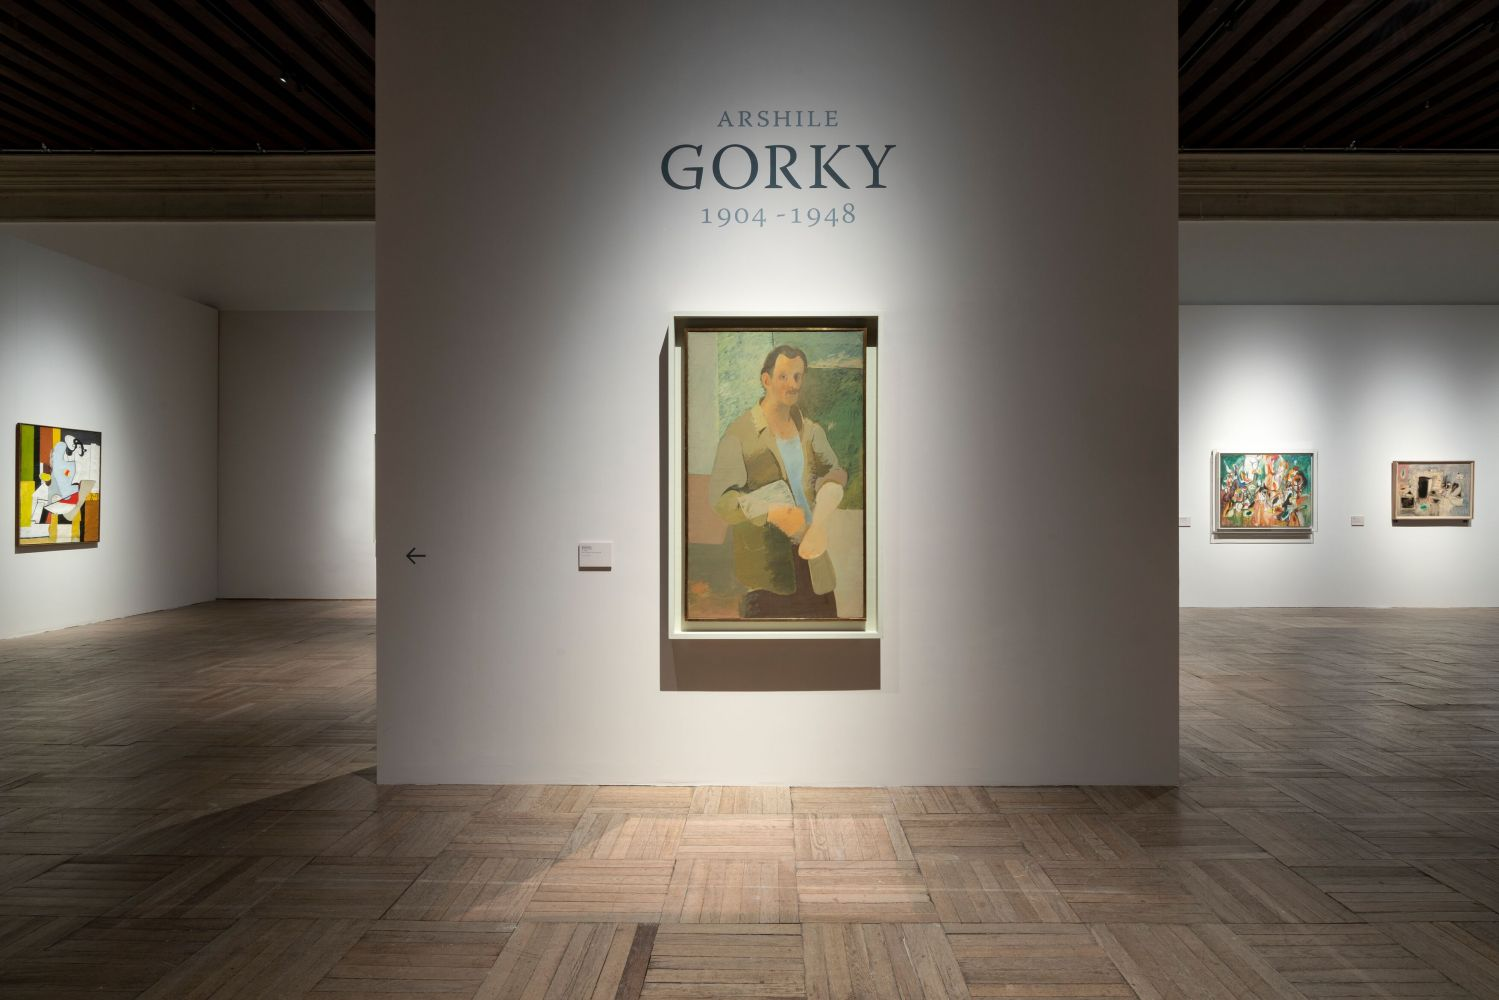 Installation photograph showing a self-portrait painting by Gorky